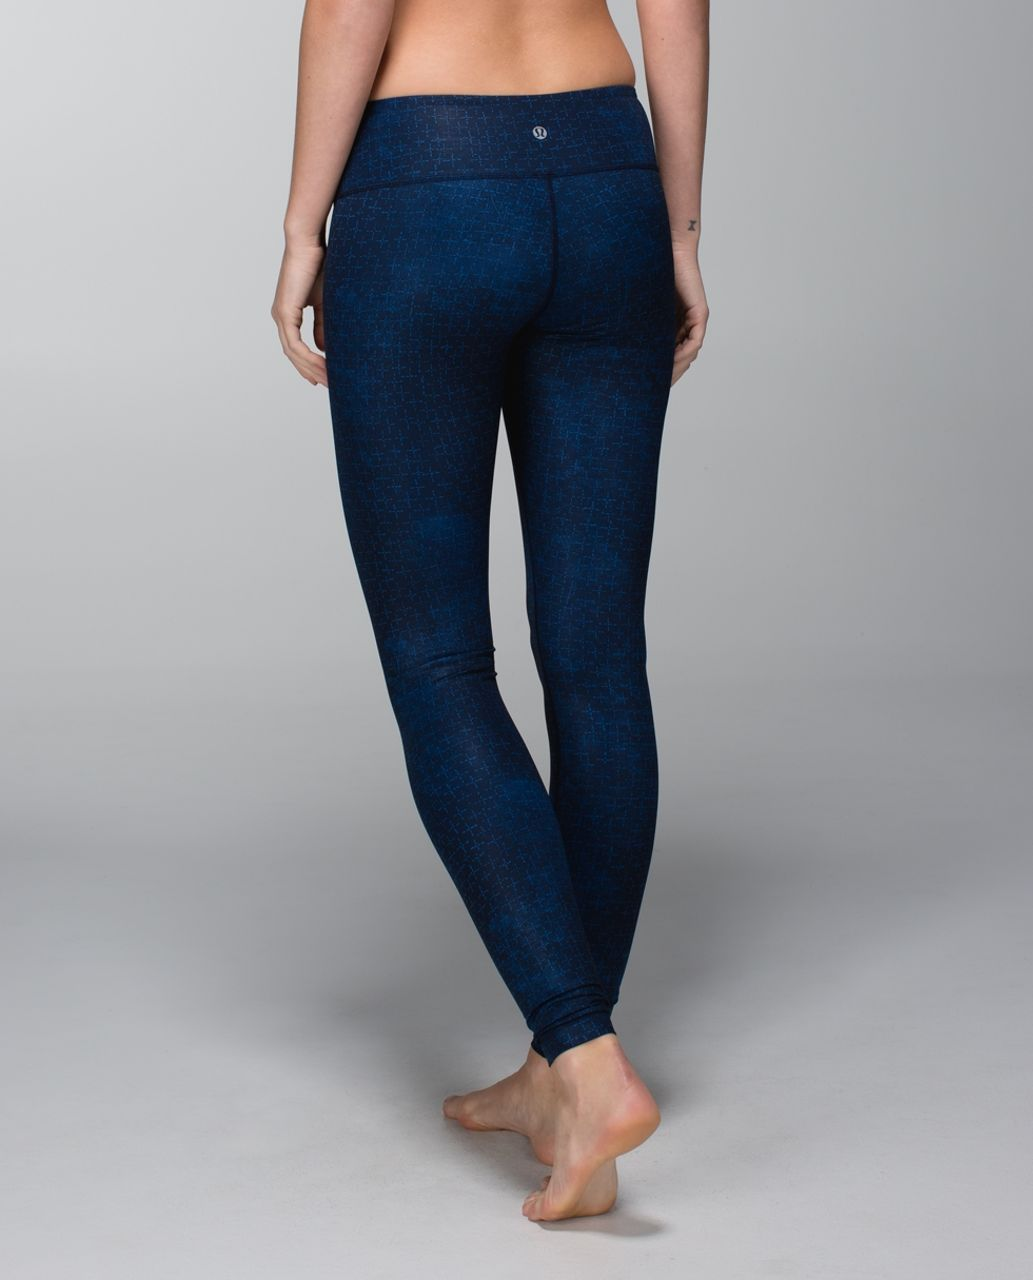 Lululemon Wunder Under Pant *Full-On Luxtreme - Exploded Sashico Cross Inkwell Rugged Blue / Exploded Sashico Star Inkwell Rugged Blue